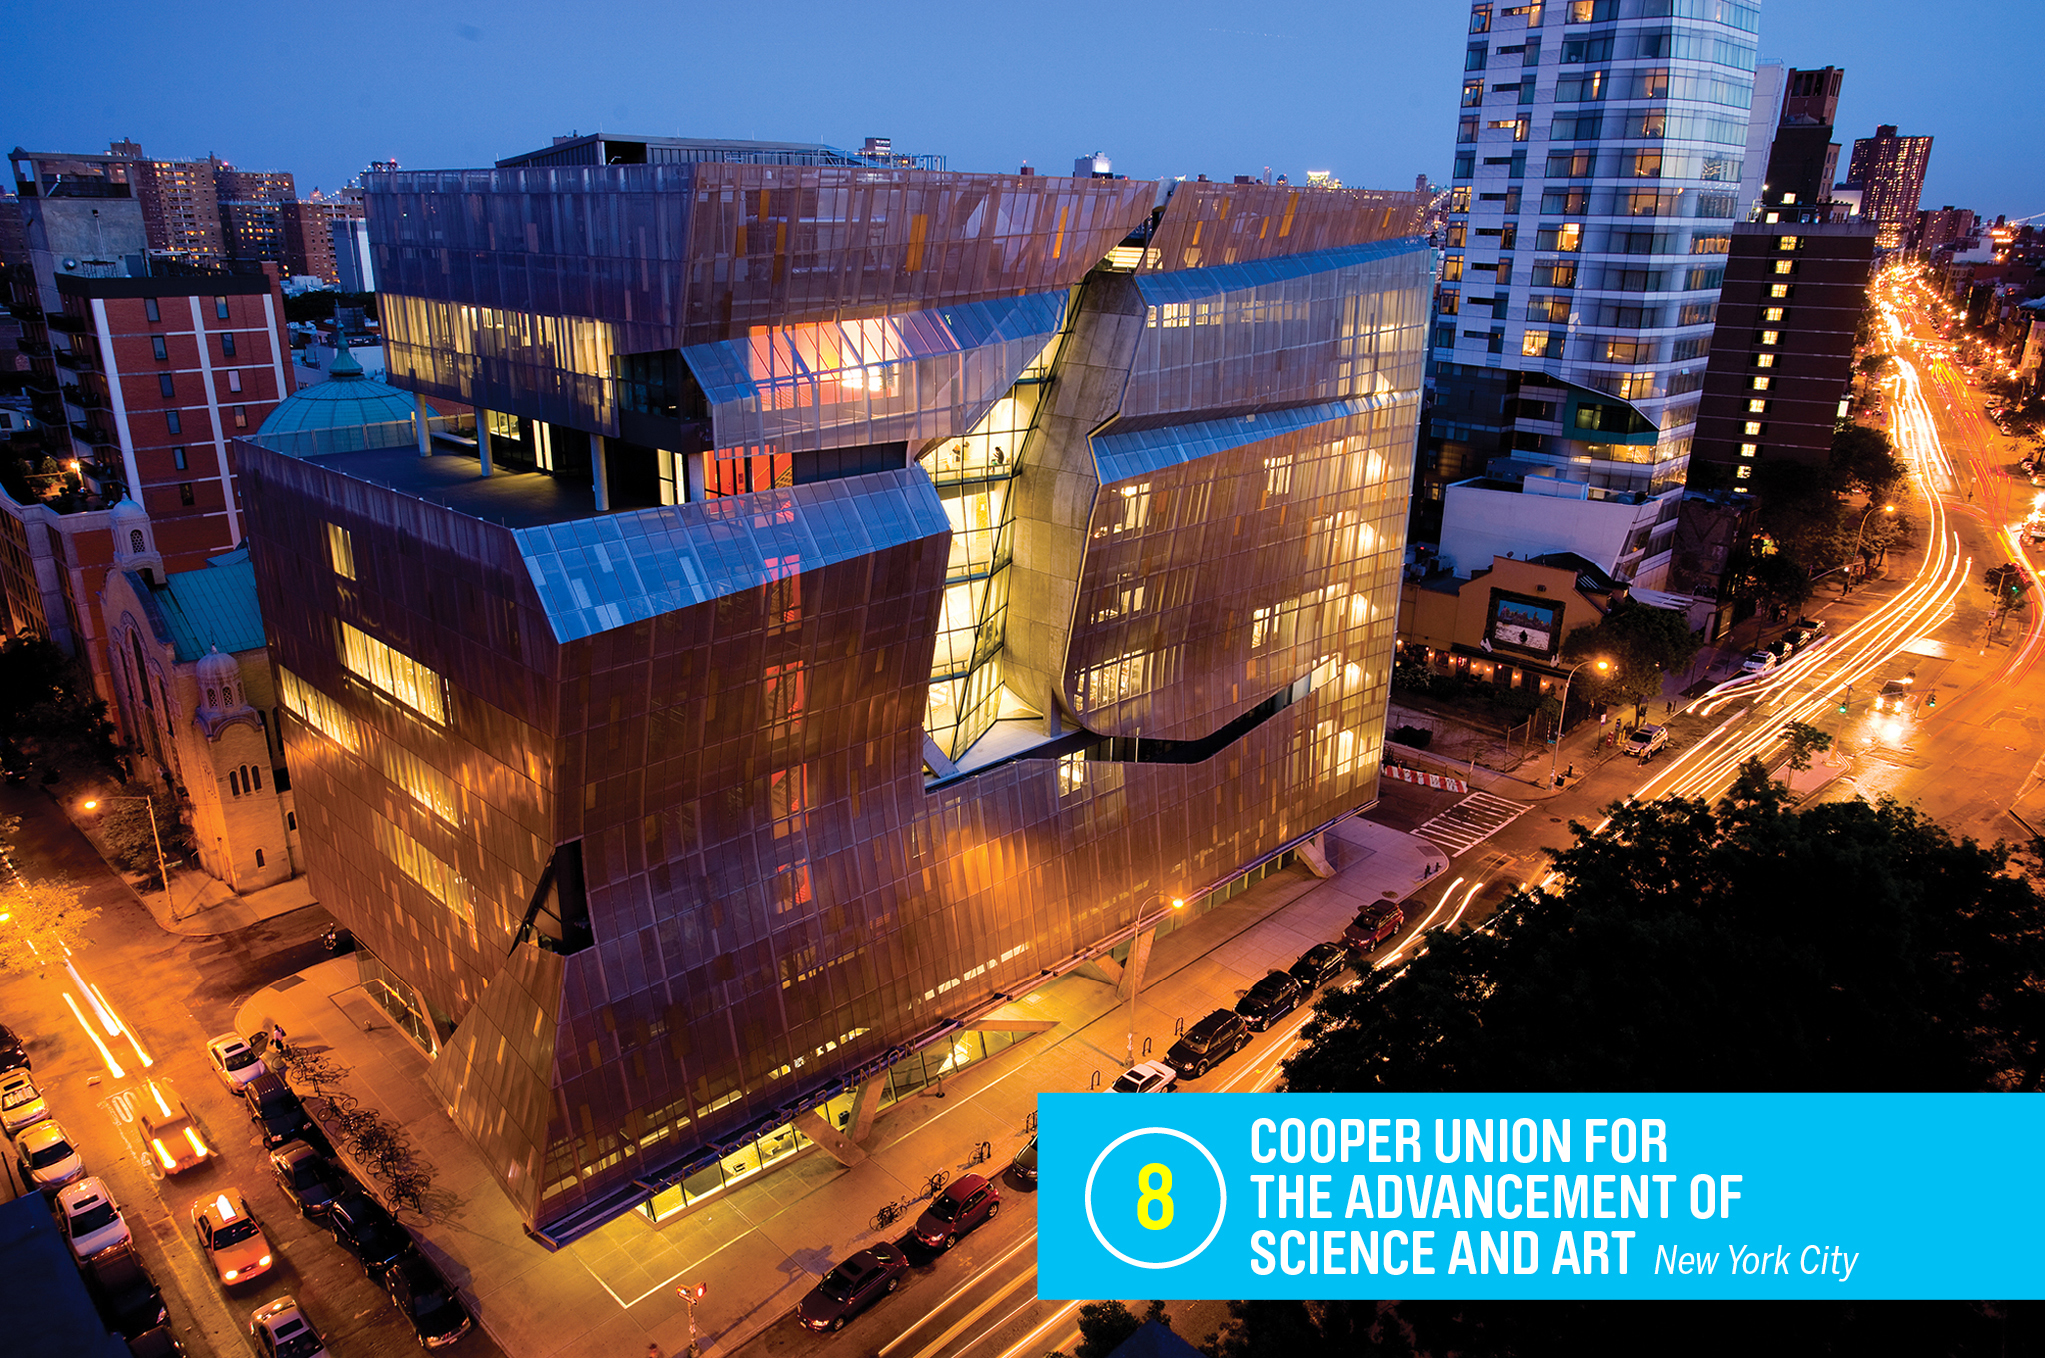 """<a href=""""https://money.com/best-colleges/profile/cooper-union-for-the-advancement-of-science-and-art/"""" target=""""_blank"""">Cooper Union</a> is unique—a small, urban school that offers degrees only in art, architecture, and engineering. Though Cooper Union no longer has the free tuition policy it was founded with, it's still much more affordable than other elite private colleges.                                            <a href=""""https://money.com/best-colleges/profile/cooper-union-for-the-advancement-of-science-and-art/"""" target=""""_blank"""">FULL PROFILE</a>"""